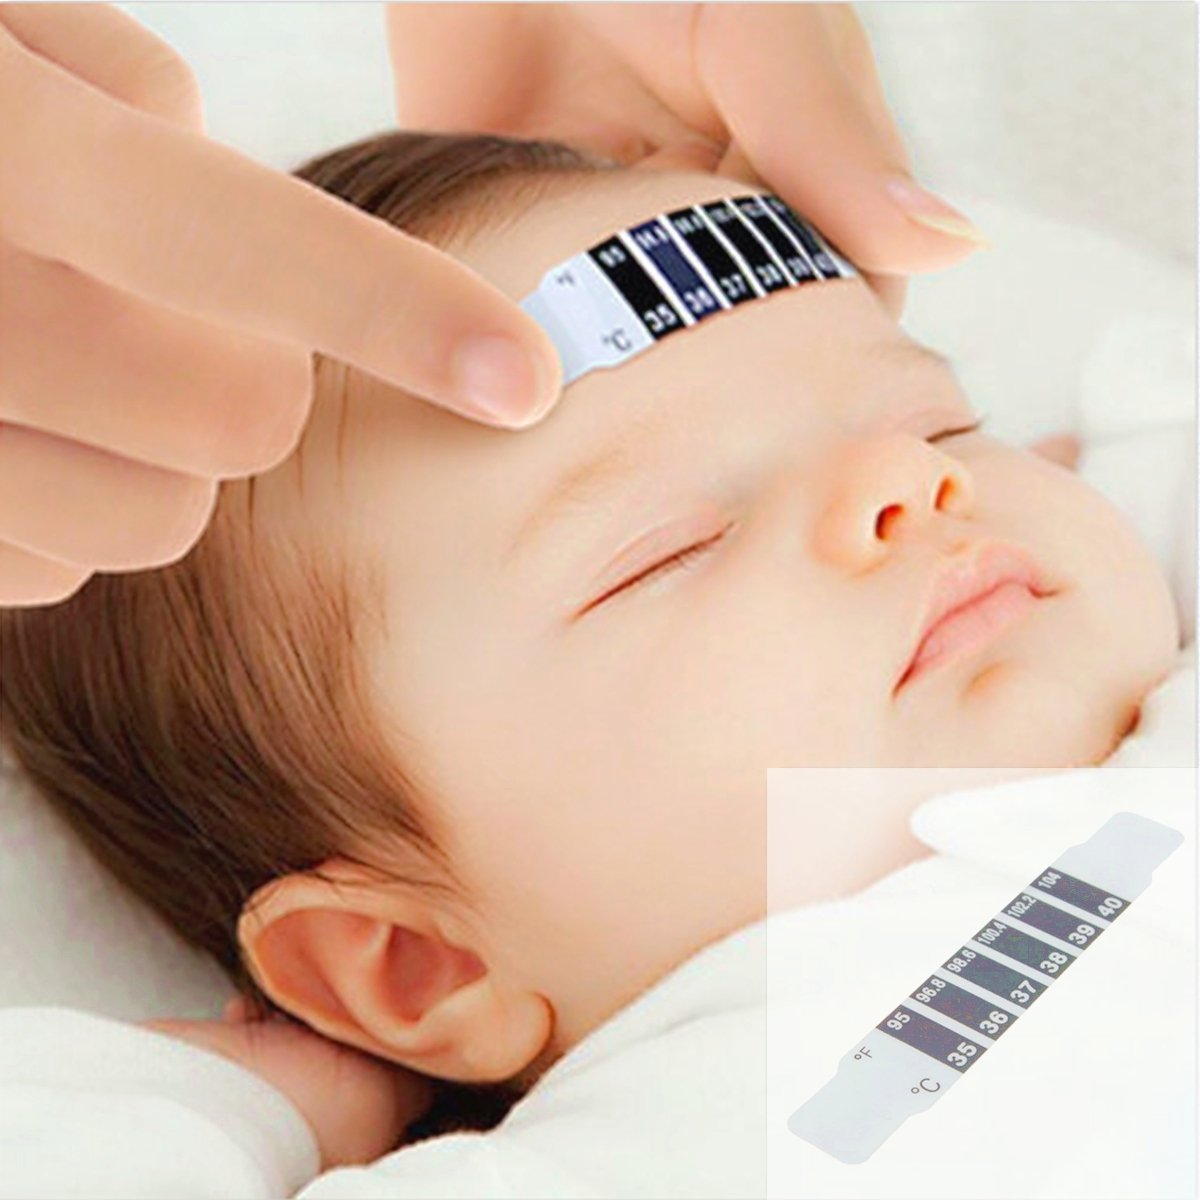 4Pcs Baby Kids Forehead Strip Thermometer Body Oxter Strip Fever Safety Healthy Temperature Test (10) by Rejuvia Clinic